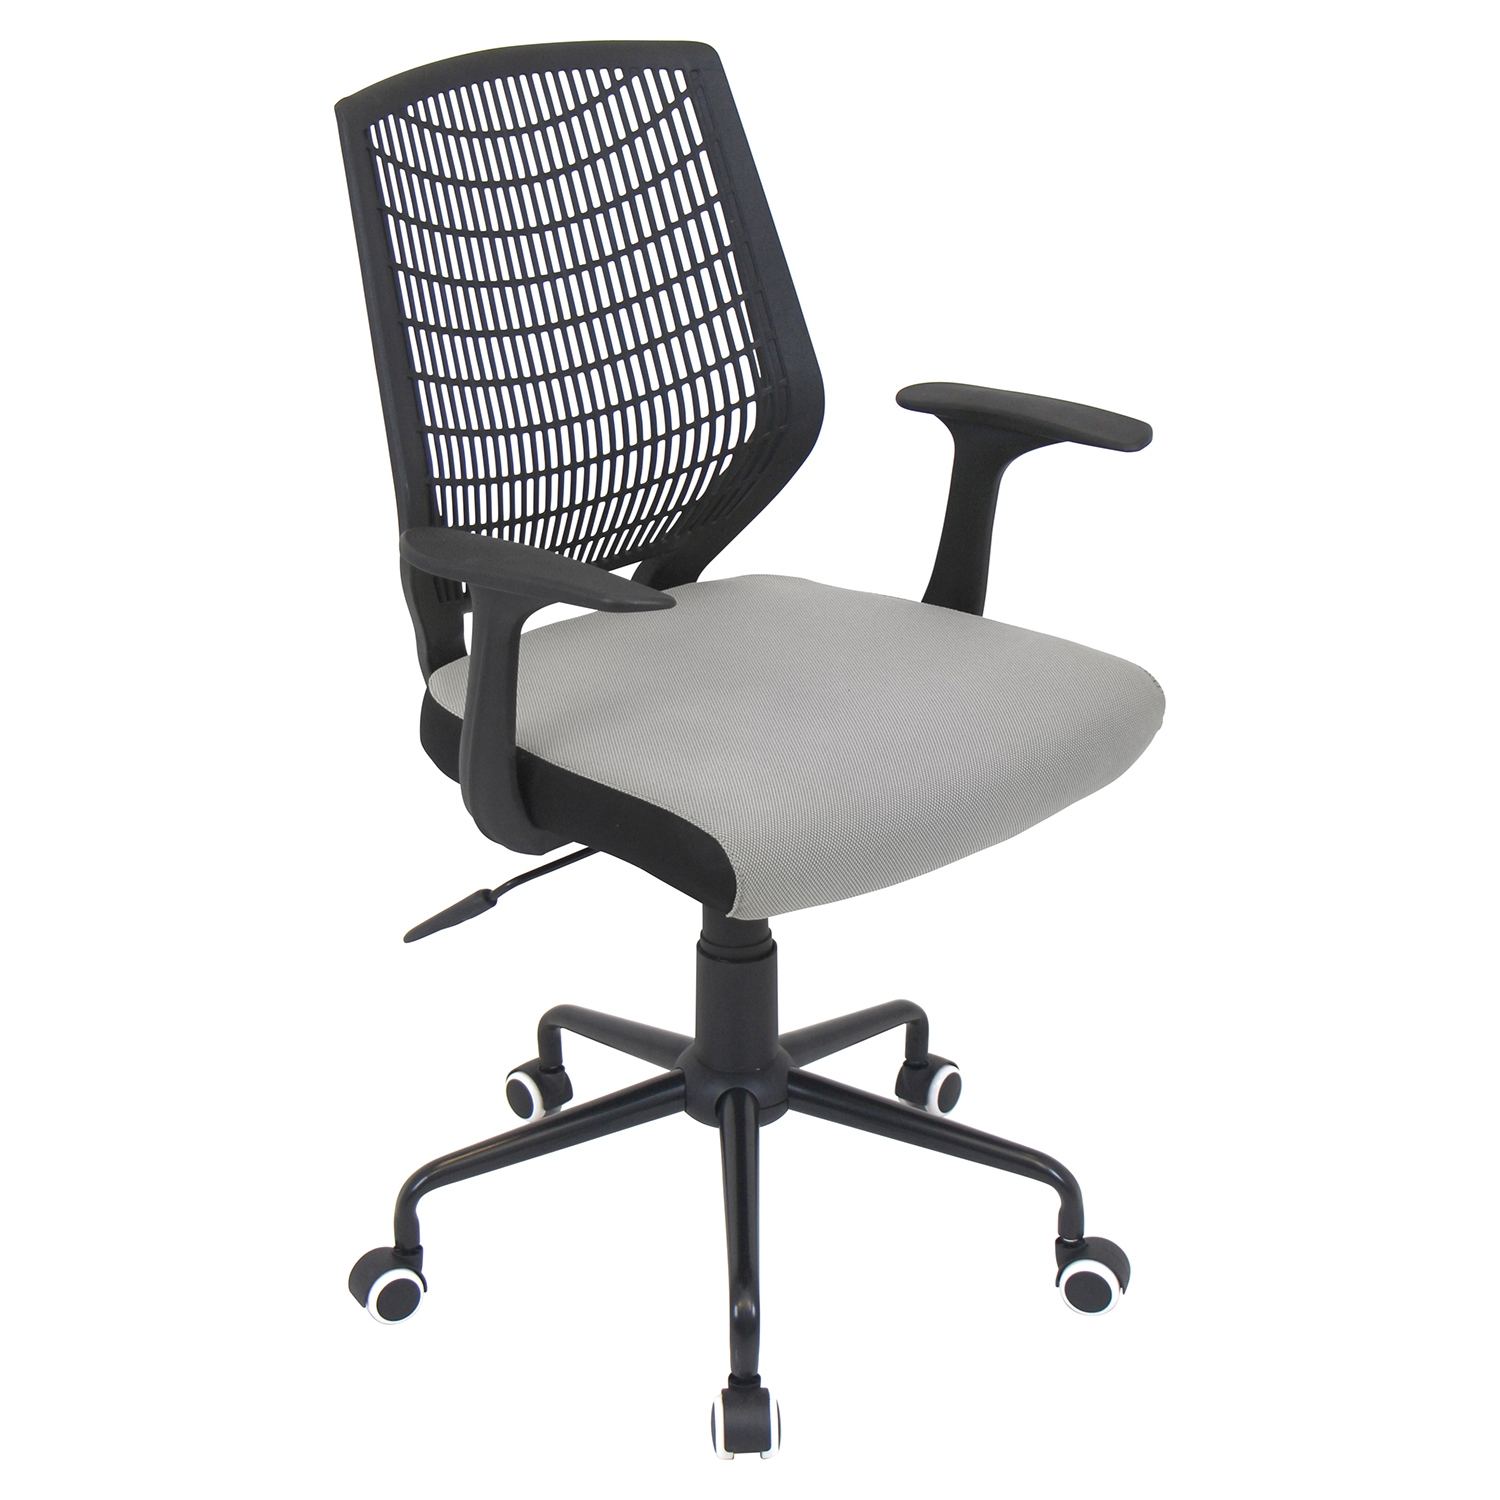 Network Height Adjustable Office Chair - Swivel, Black, Silver